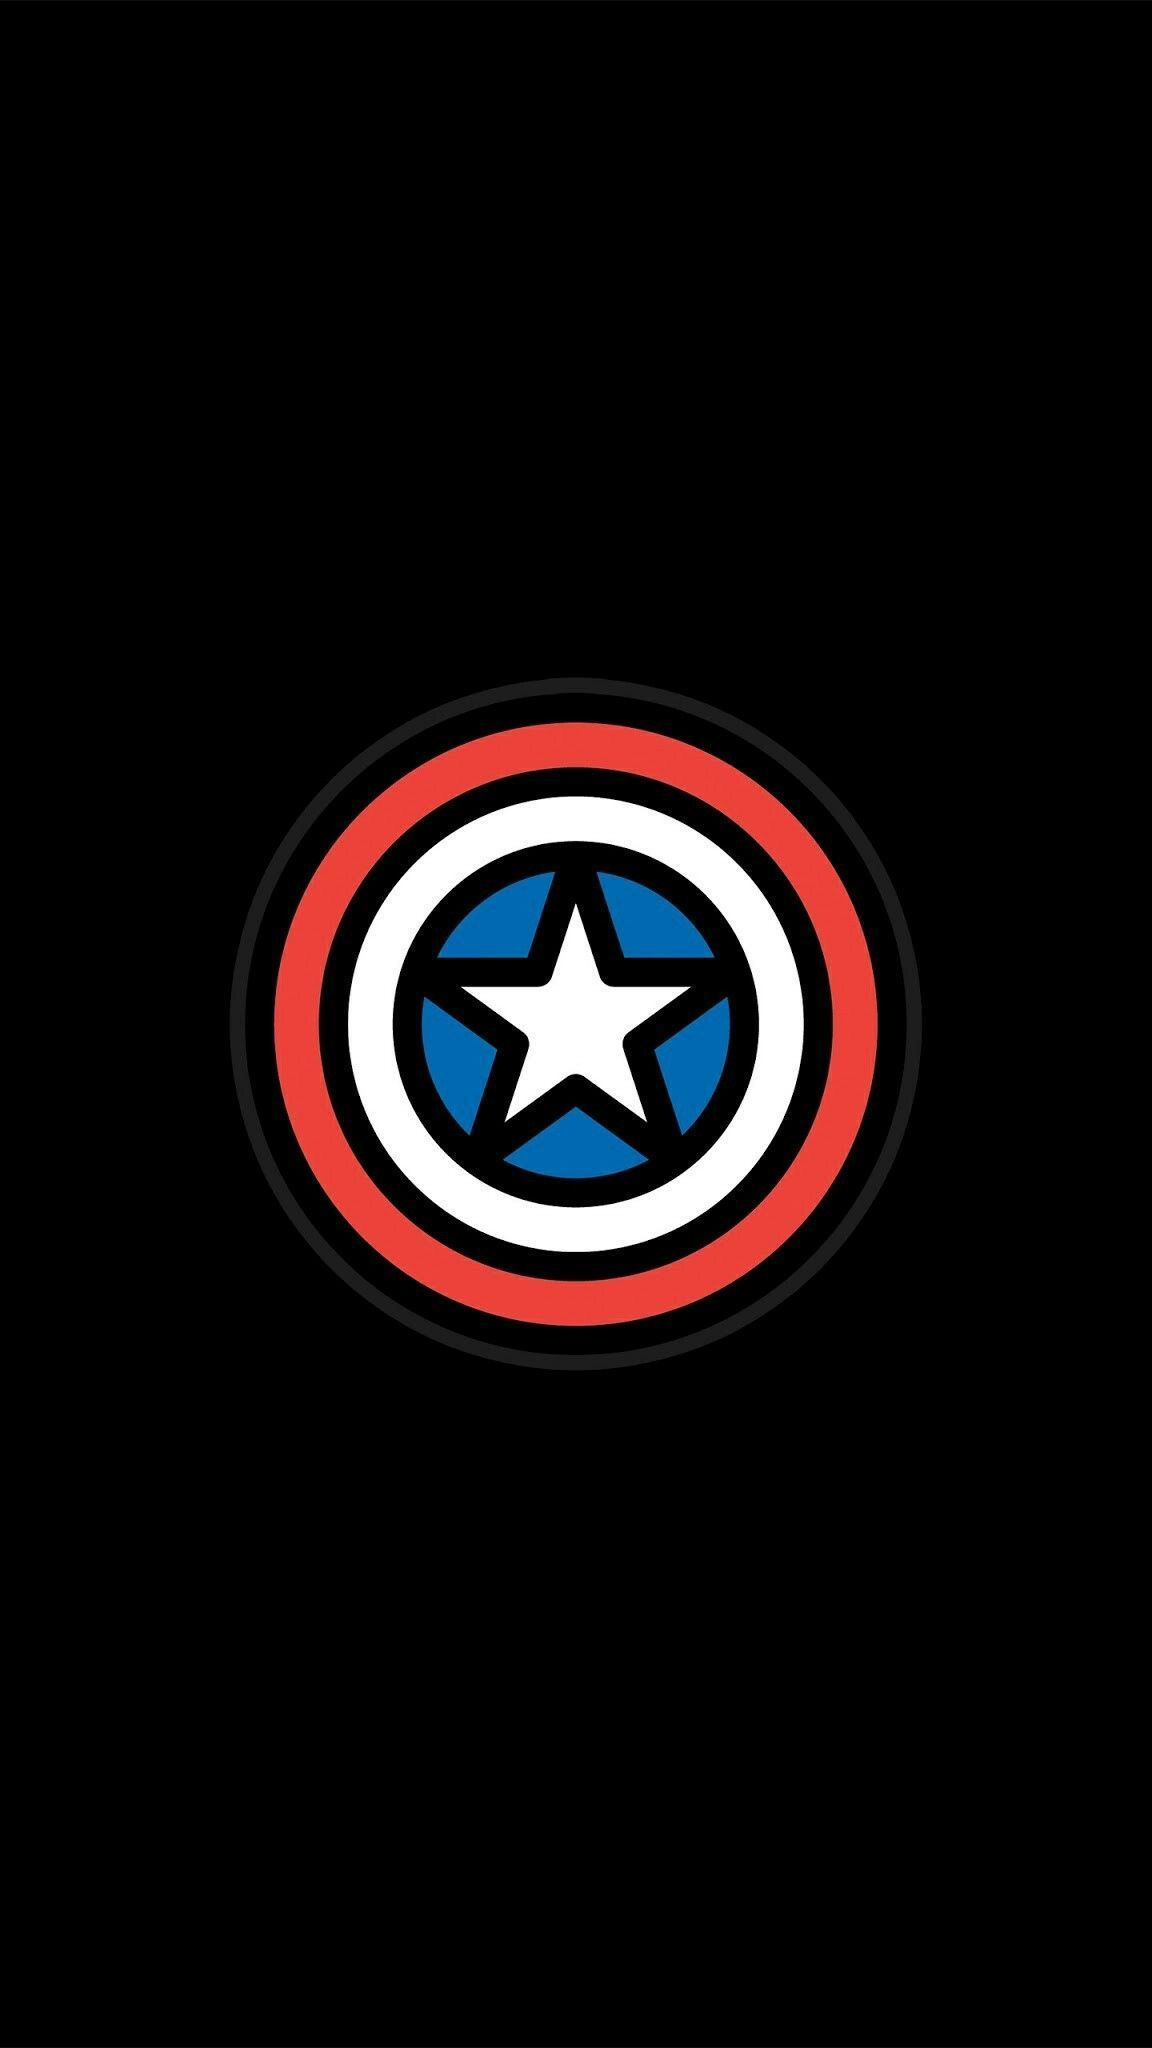 Marvel Wallpaper for iPhone from teamopenoffice.org